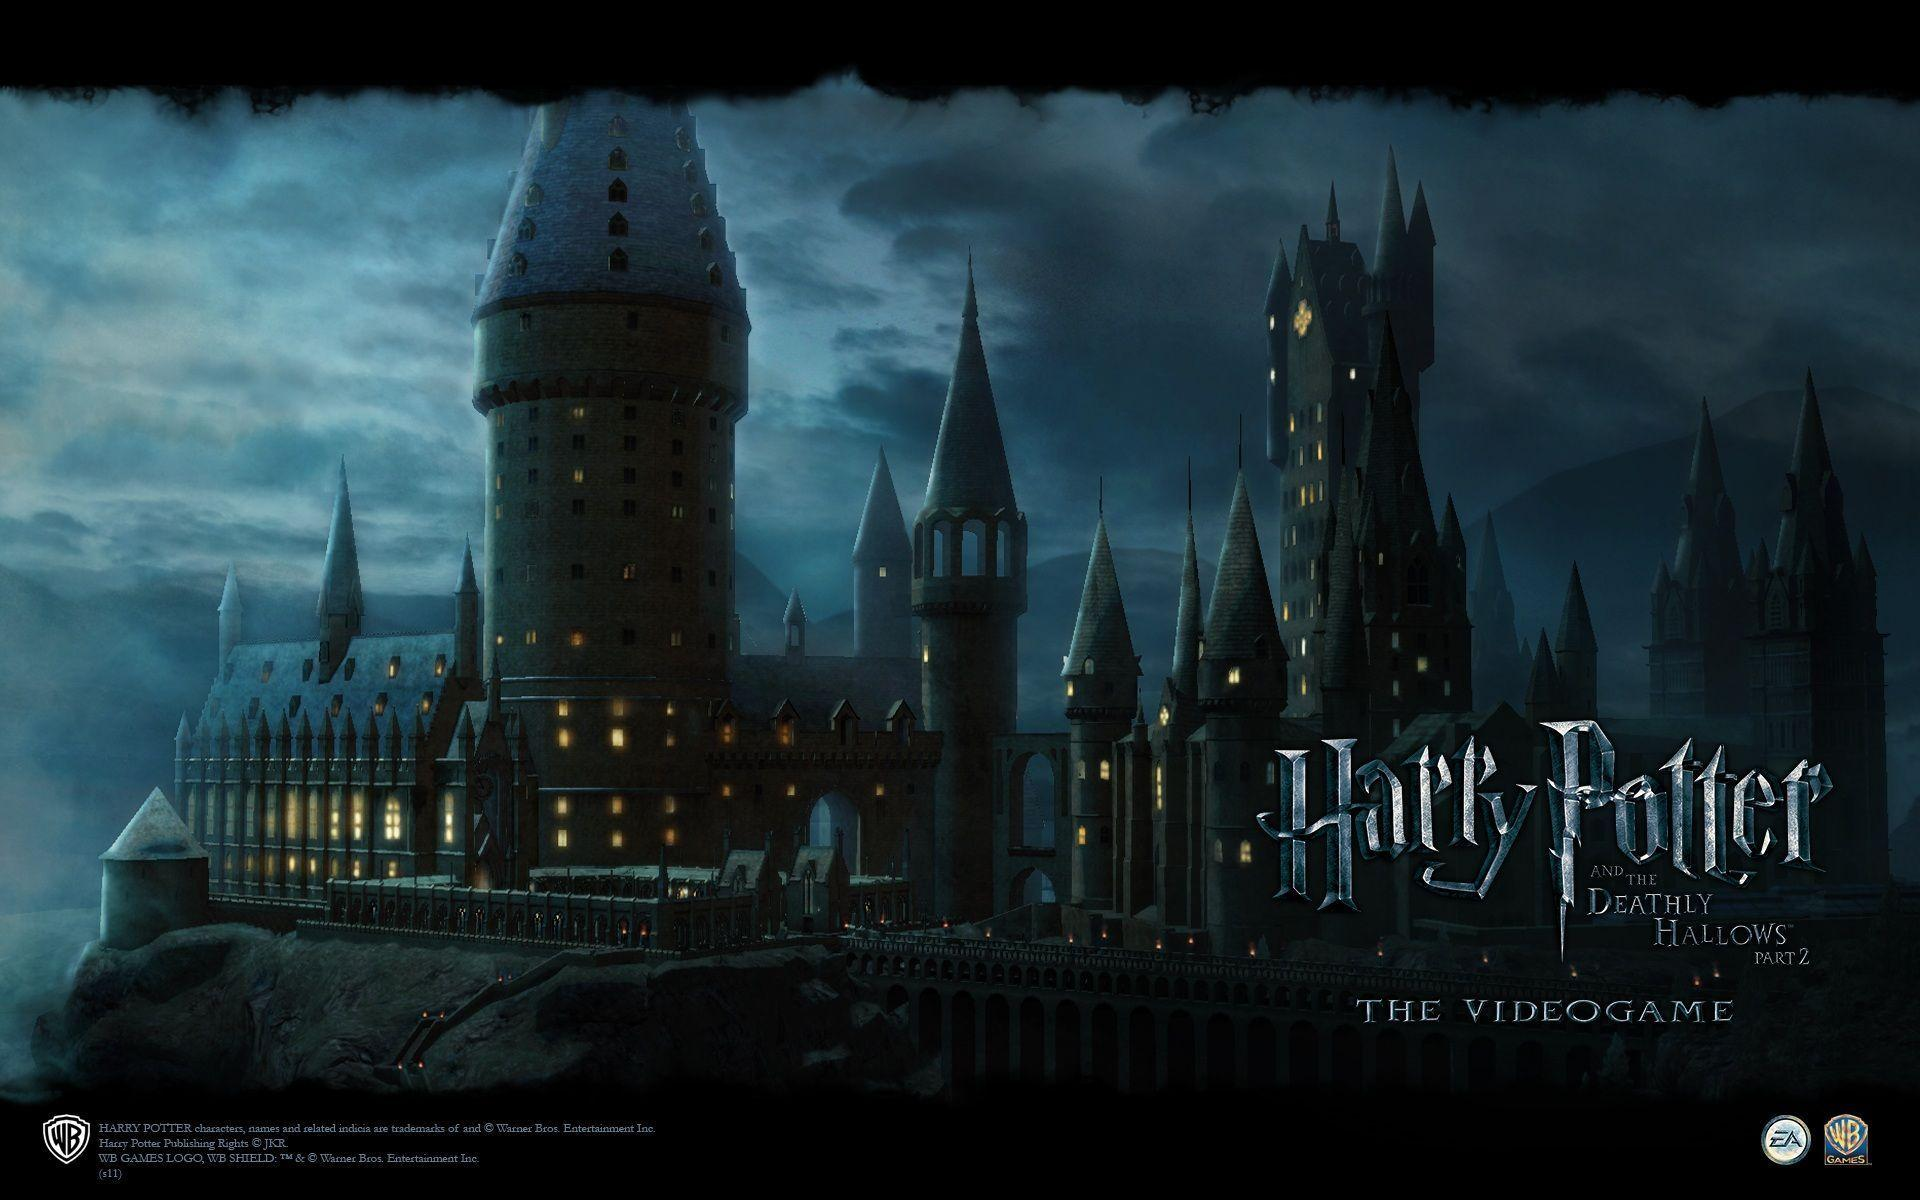 hogwarts ravenclaw wallpaper for mac - photo #19